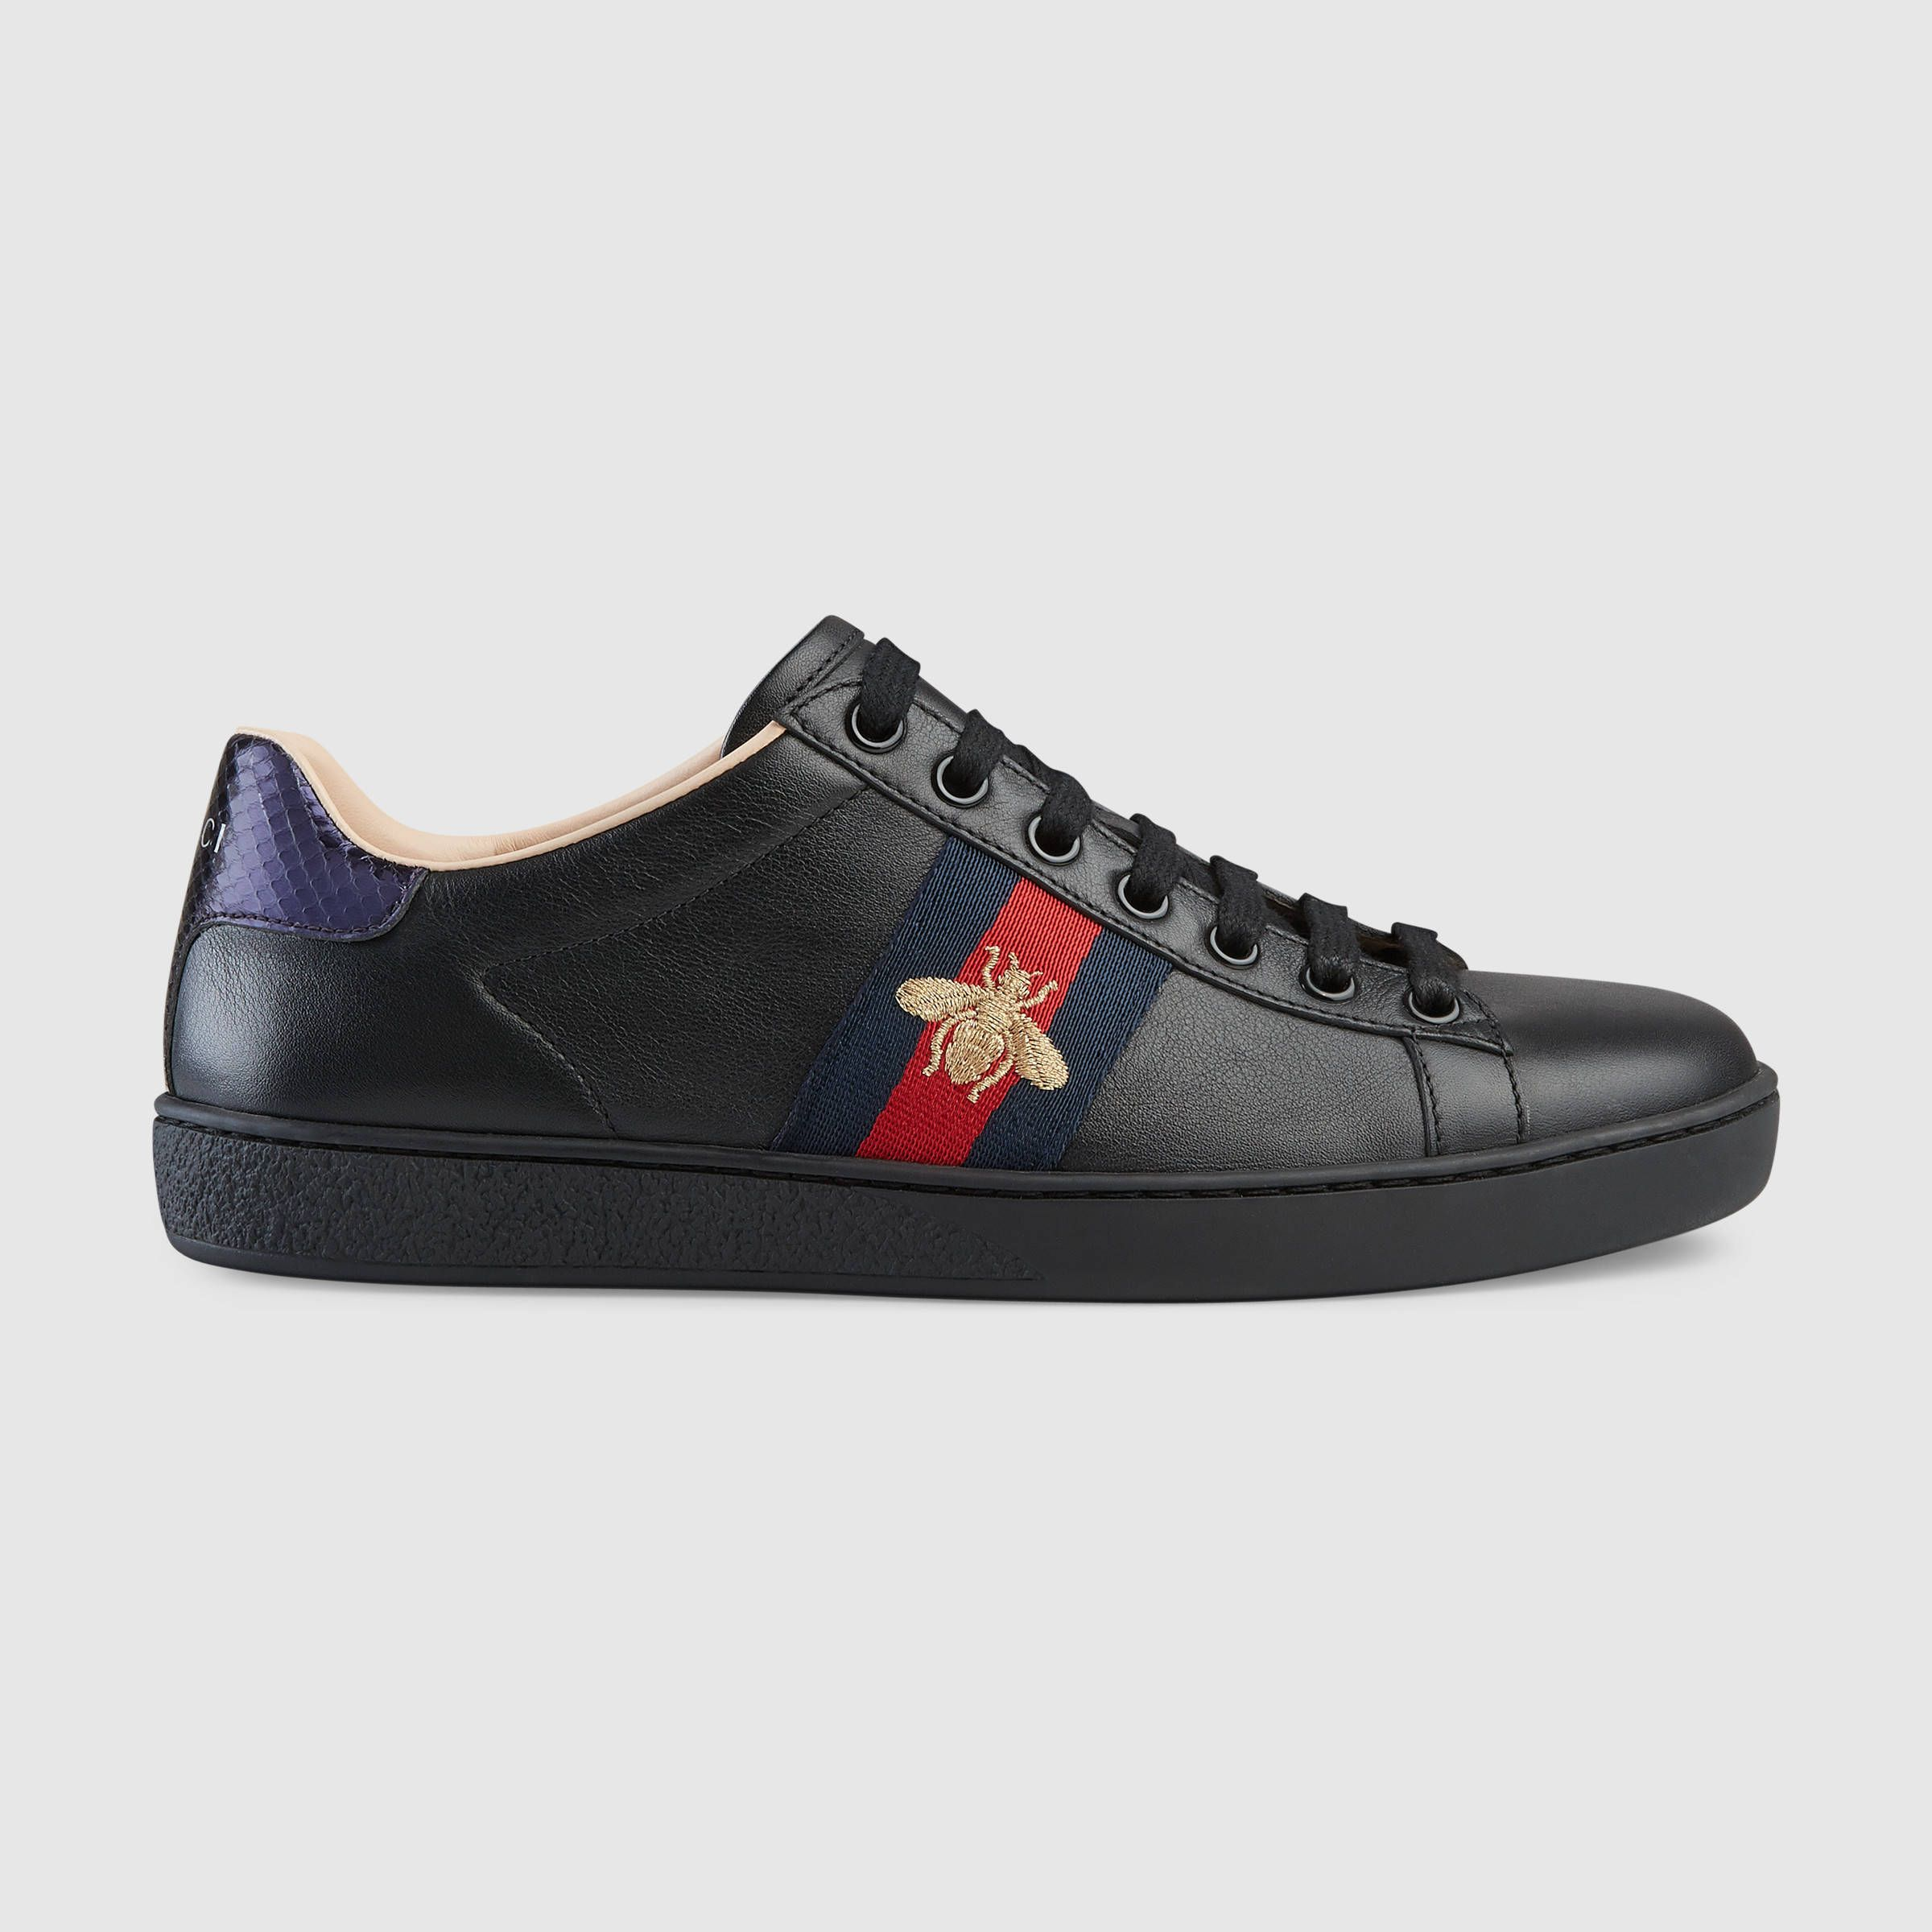 Ace embroidered sneaker - Gucci Women's Sneakers 431942A38G01284